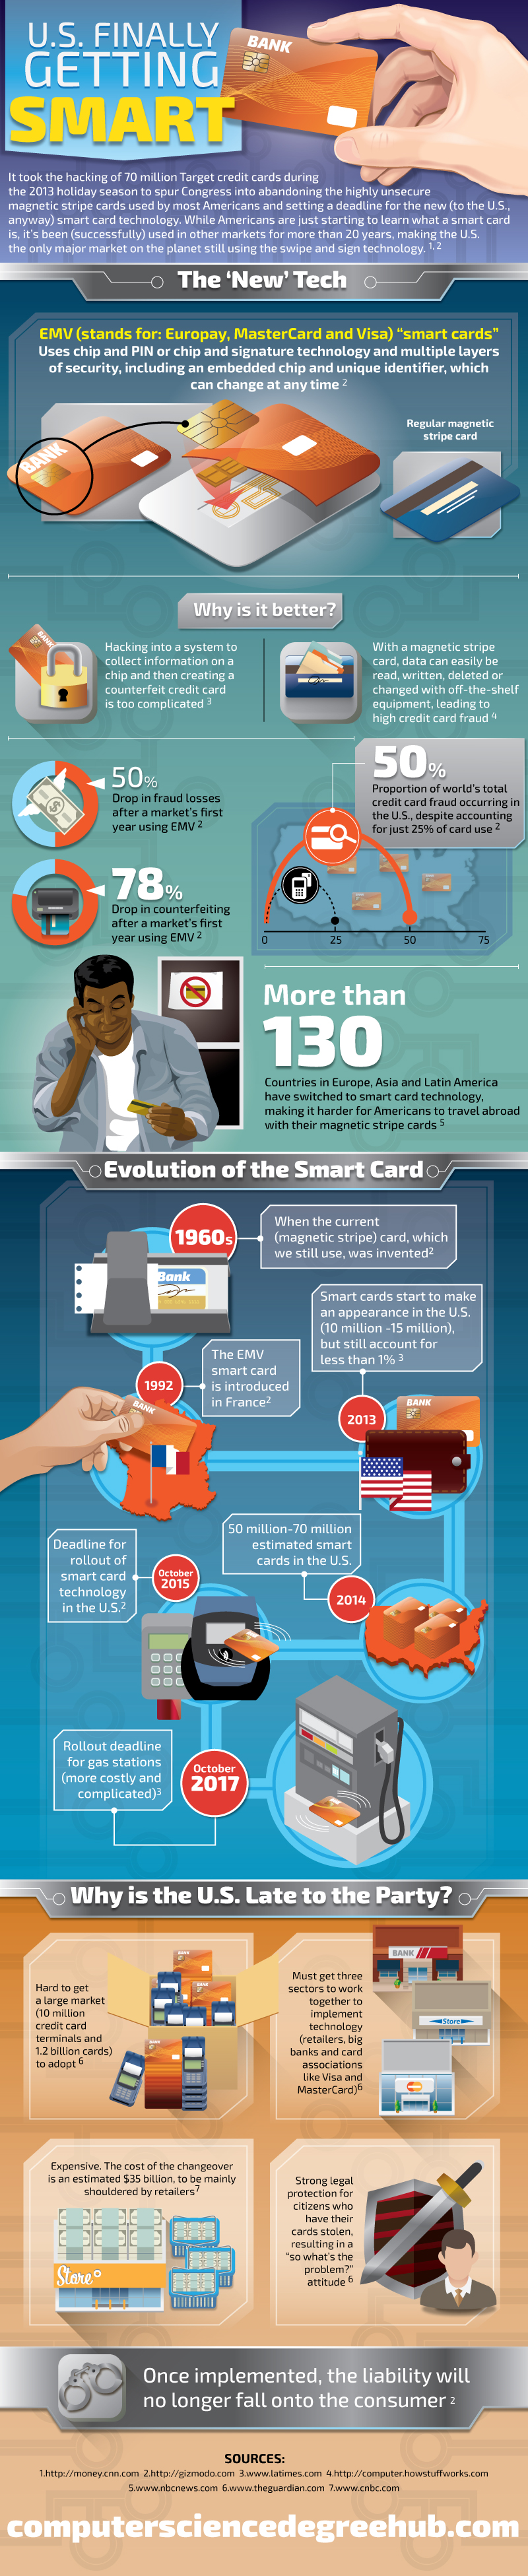 Smart Cards Coming to U.S.